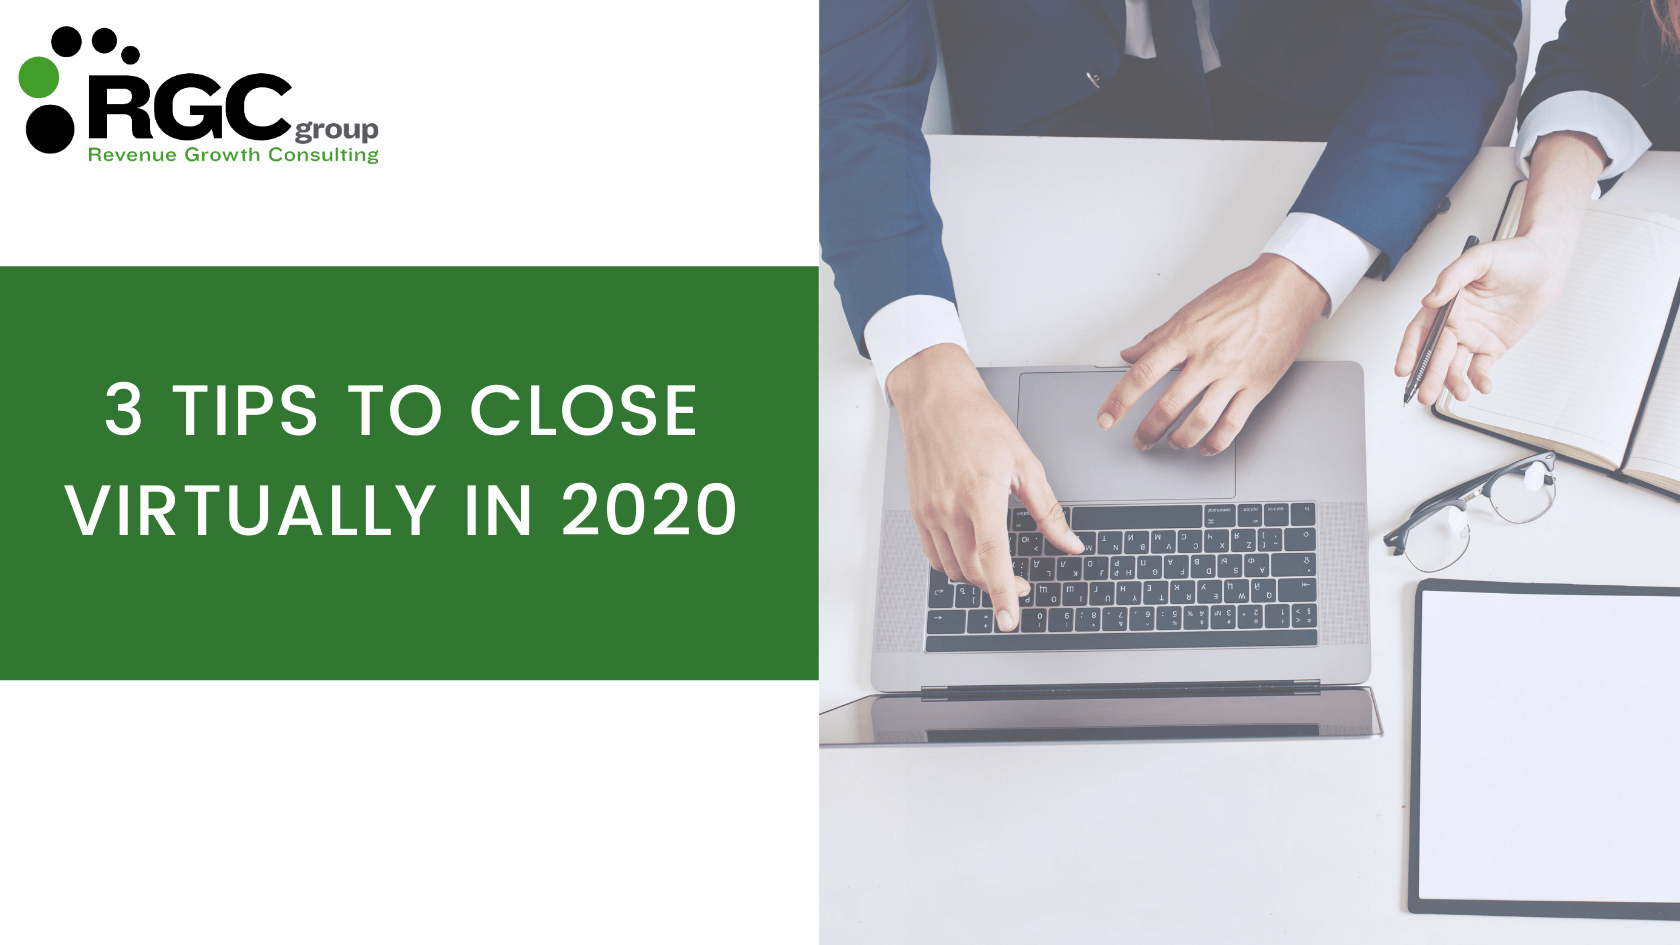 3 Secrets to Close Virtually in 2020